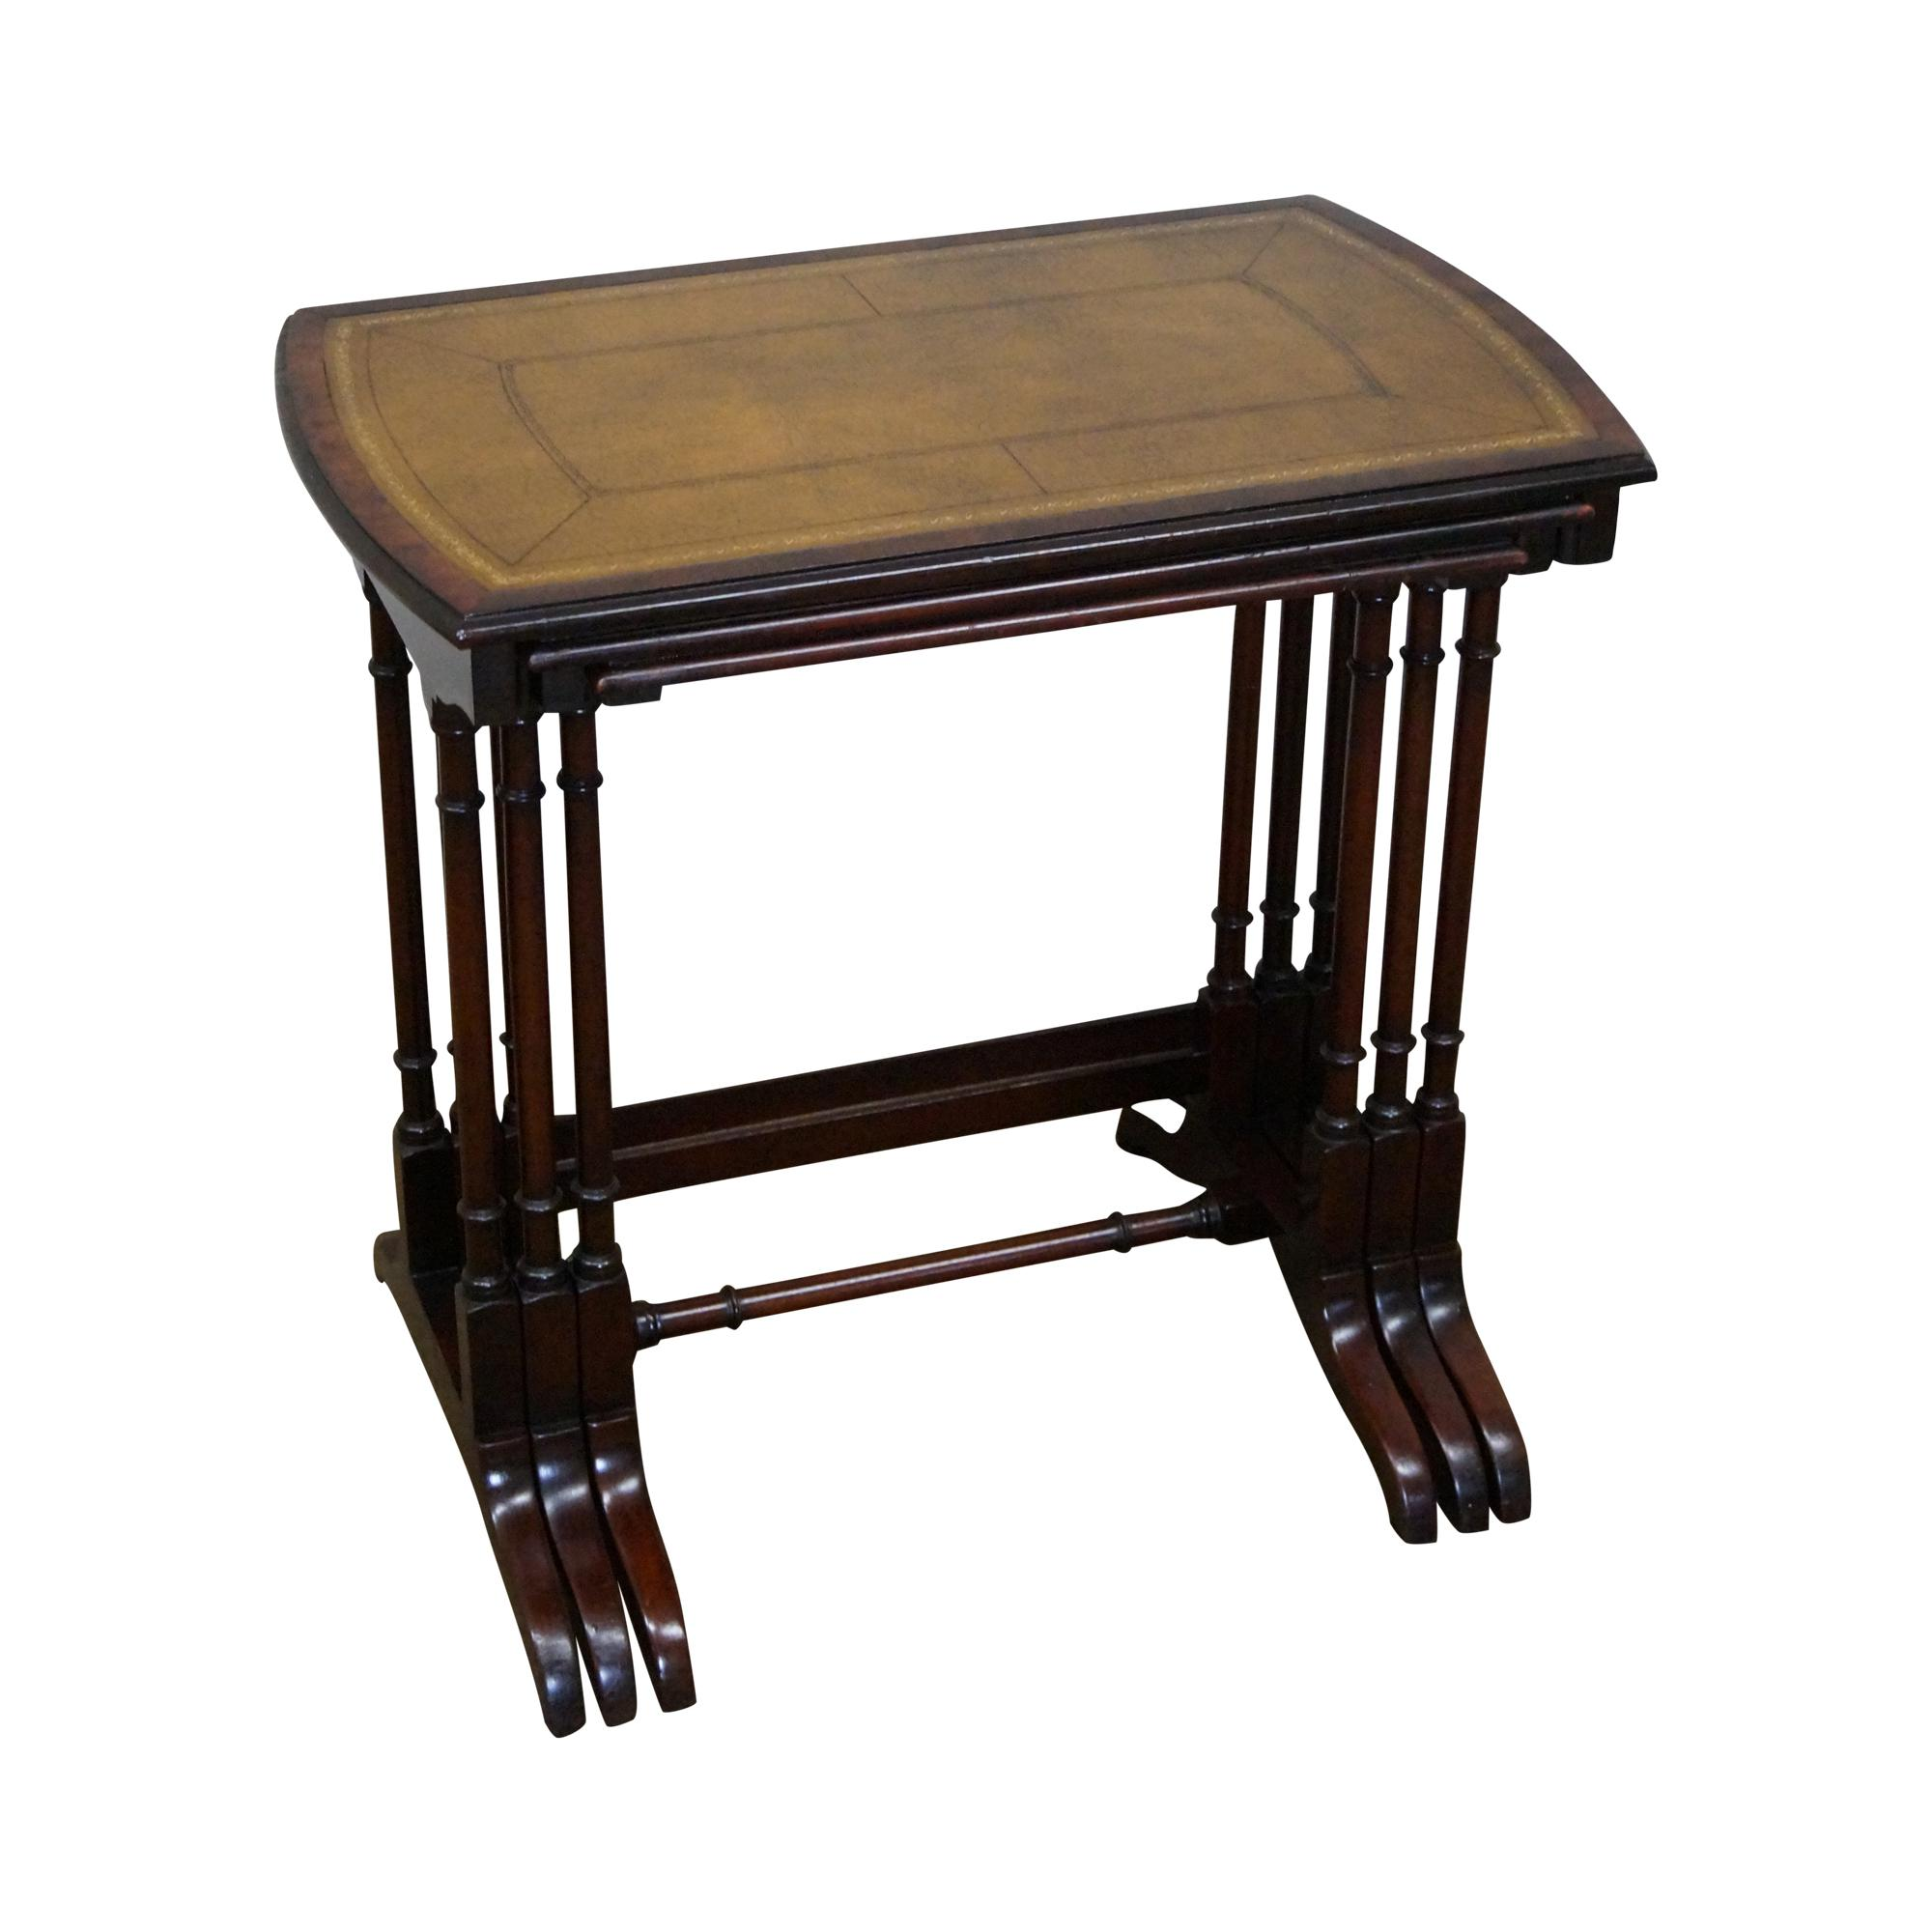 Leather Nesting Tables ~ Heritage vintage nesting mahogany leather top tables set